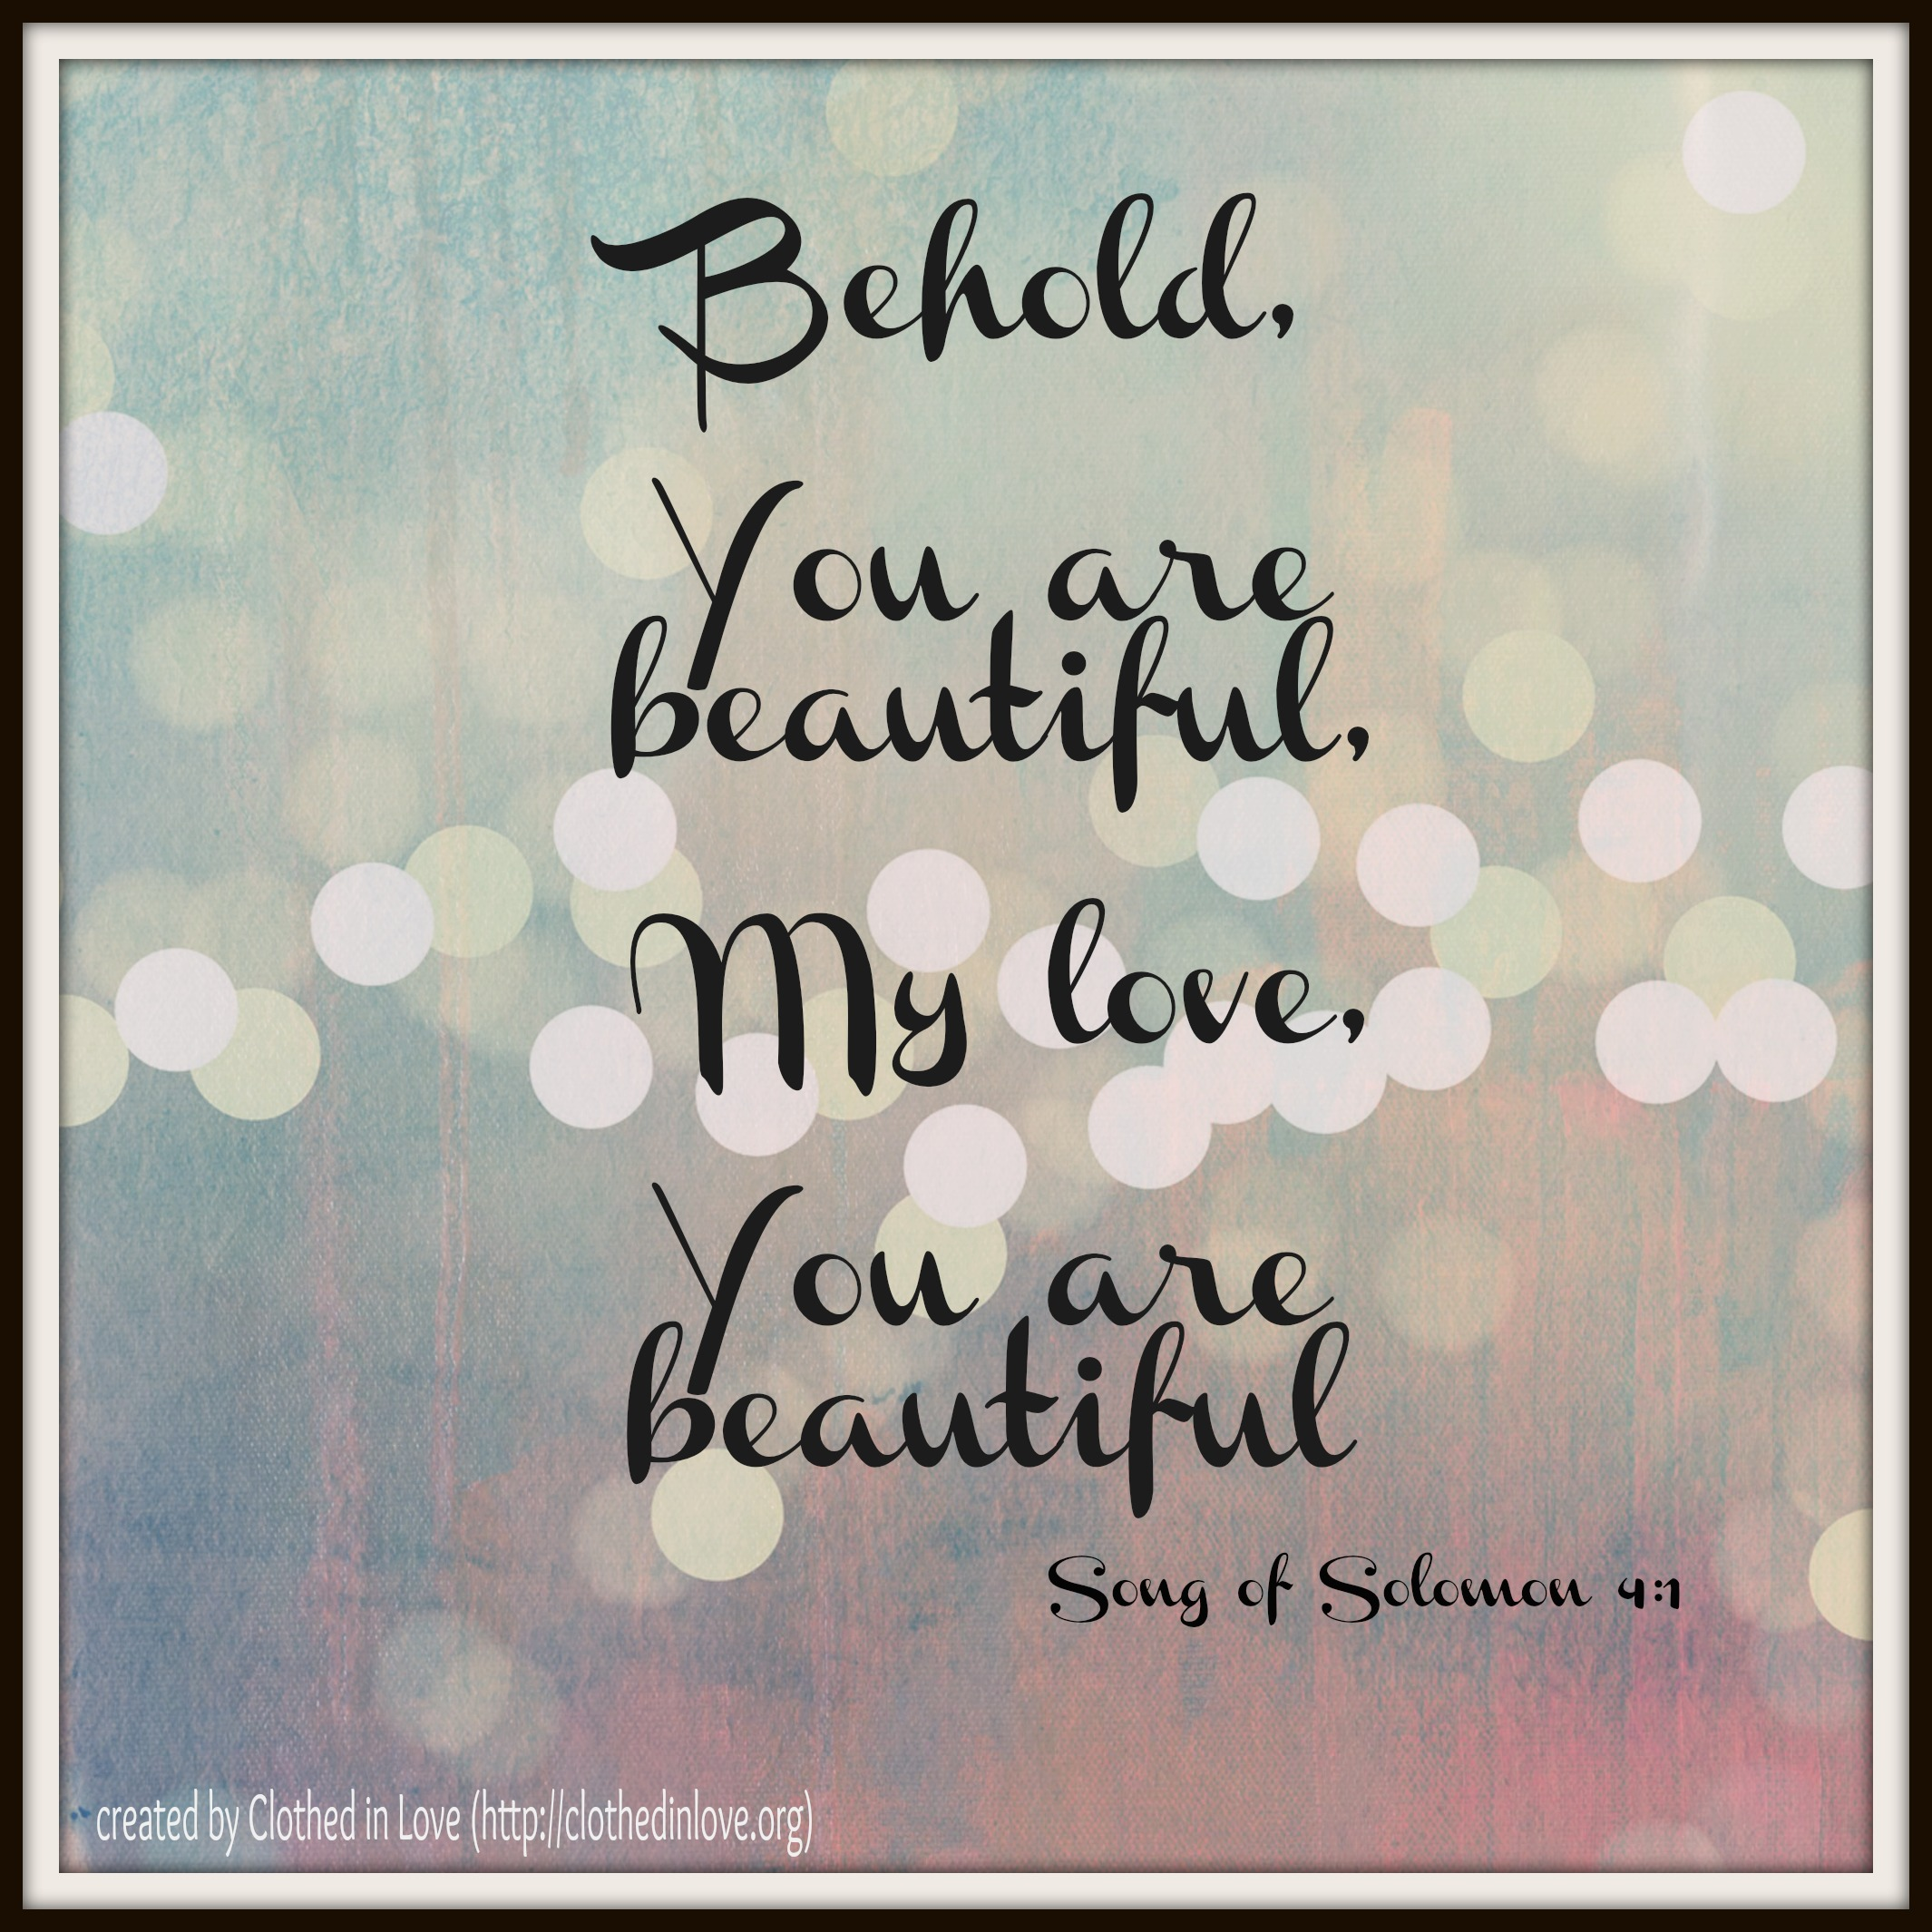 Love Quotes Songs Of Solomon: Song of solomon quotes quotesgram.